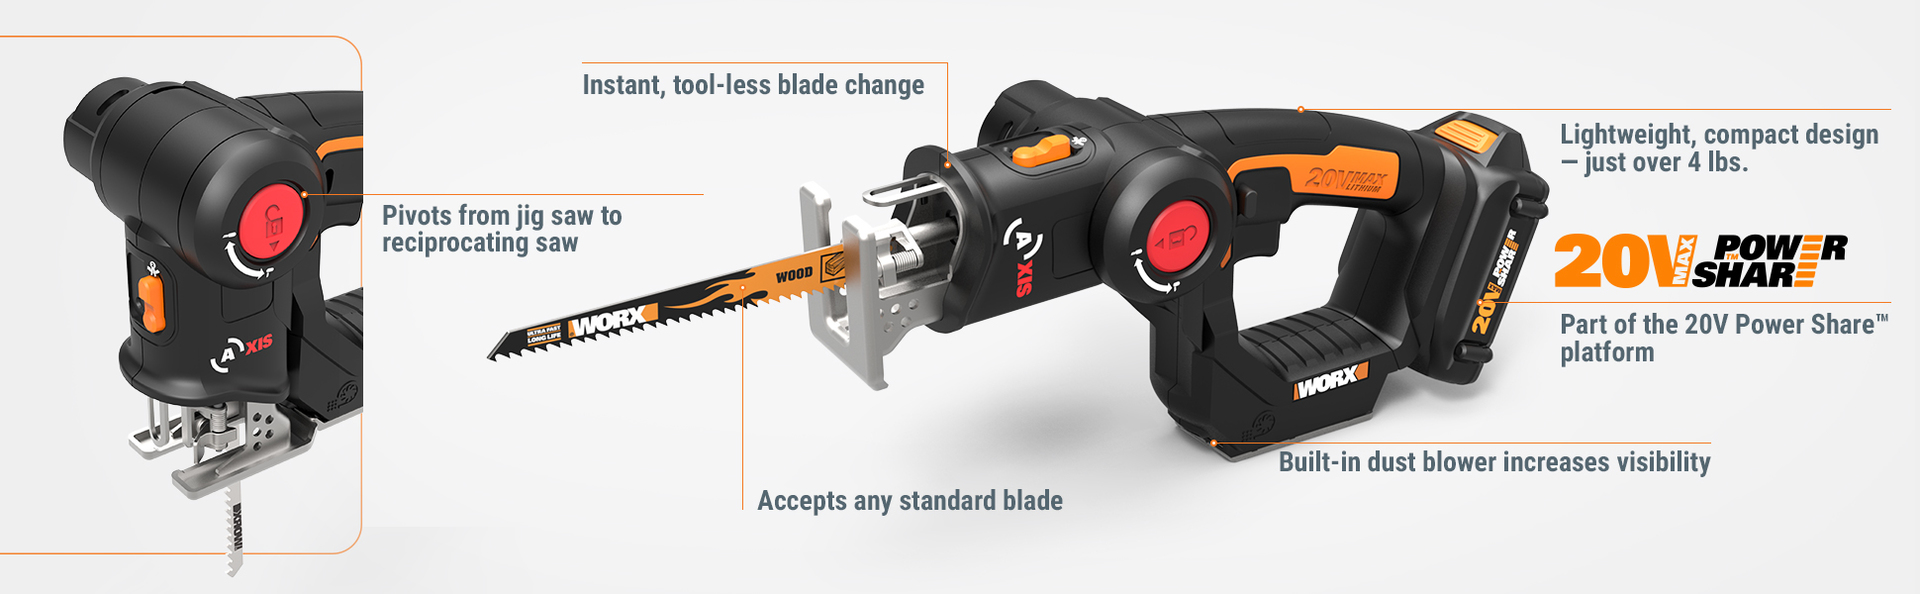 Worx wx550l 20v axis 2 in 1 reciprocating saw and jigsaw with the 20v axis combines a reciprocating saw and a jigsaw in one useful tool delivering versatility and power so you can make the fast clean cuts your job greentooth Gallery